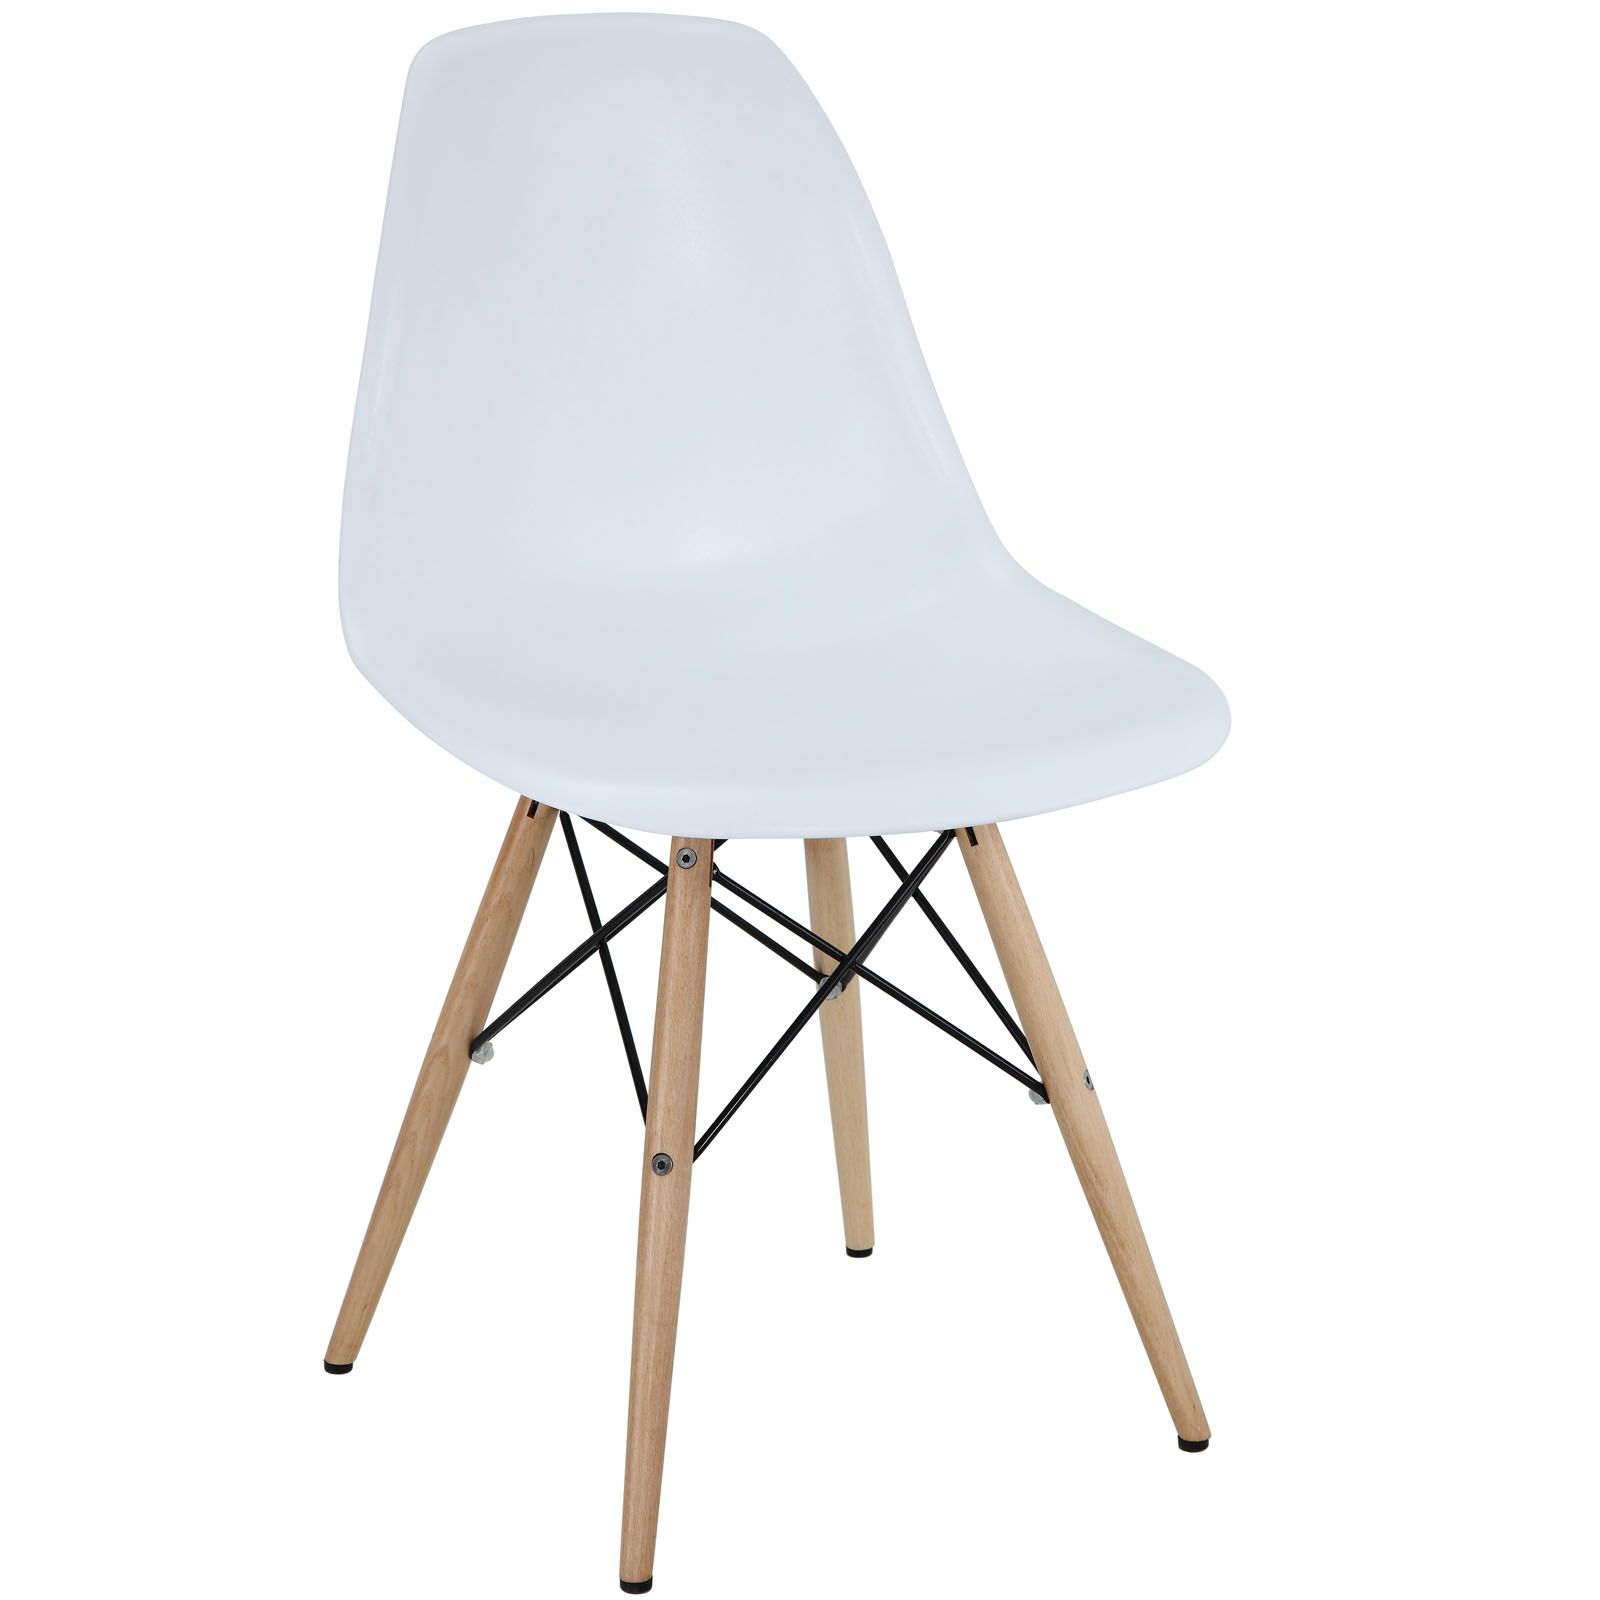 N MidCentury Modern Furniture Rentals In Los Angeles County Eames Side Chair  Rentals We Deliver Southern California San Francisco OC Las Vegas SD IE